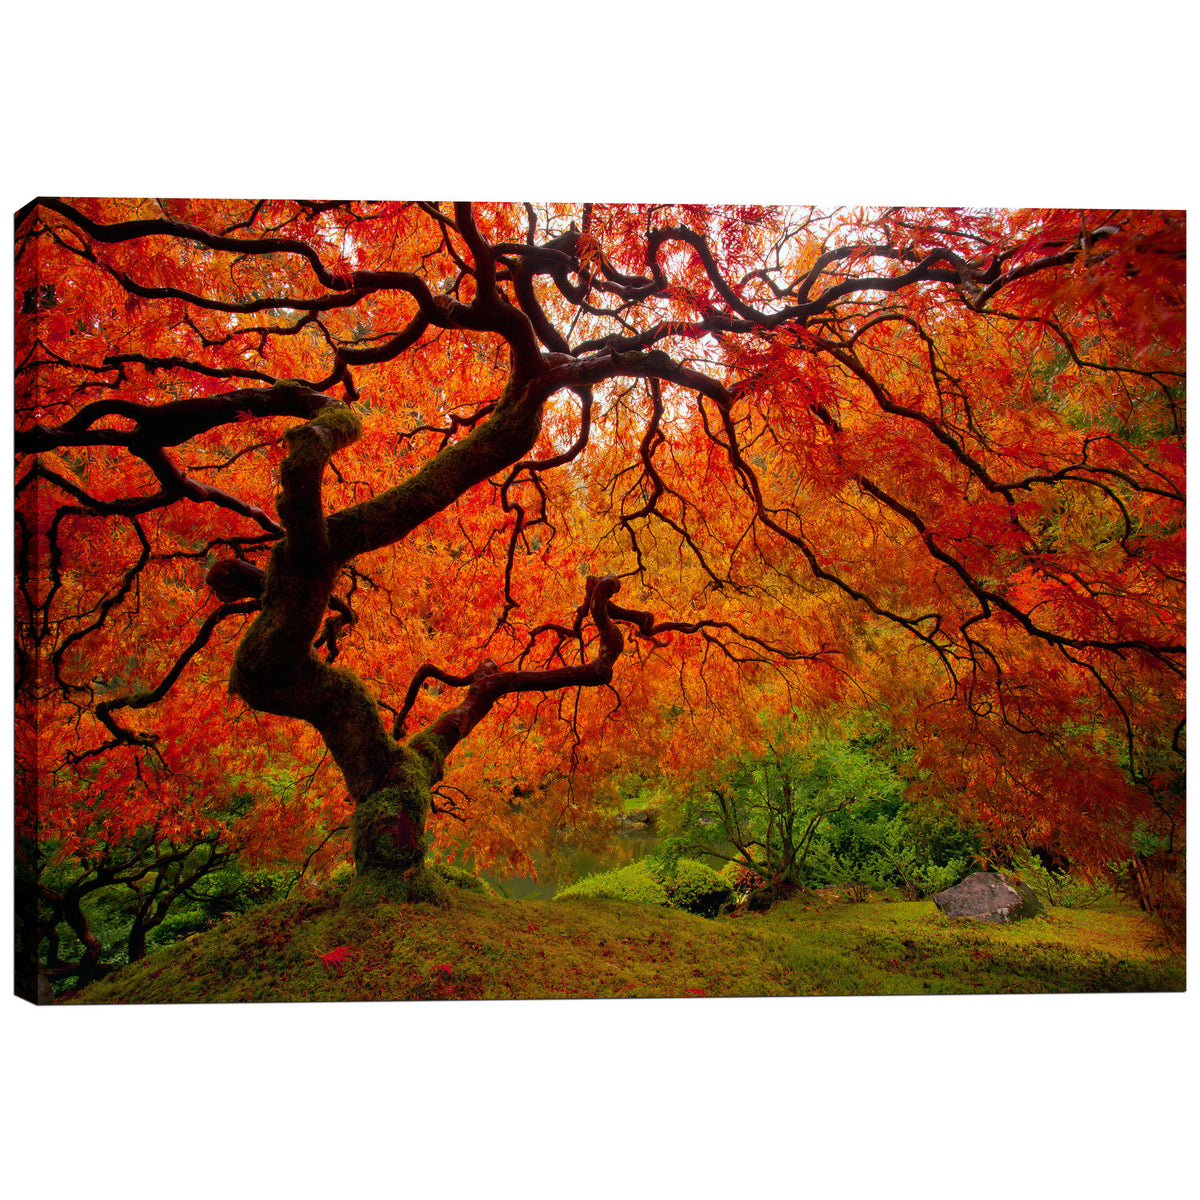 "Epic Graffiti ""Tree Fire"" by Darren White, Giclee Canvas Wall Art"